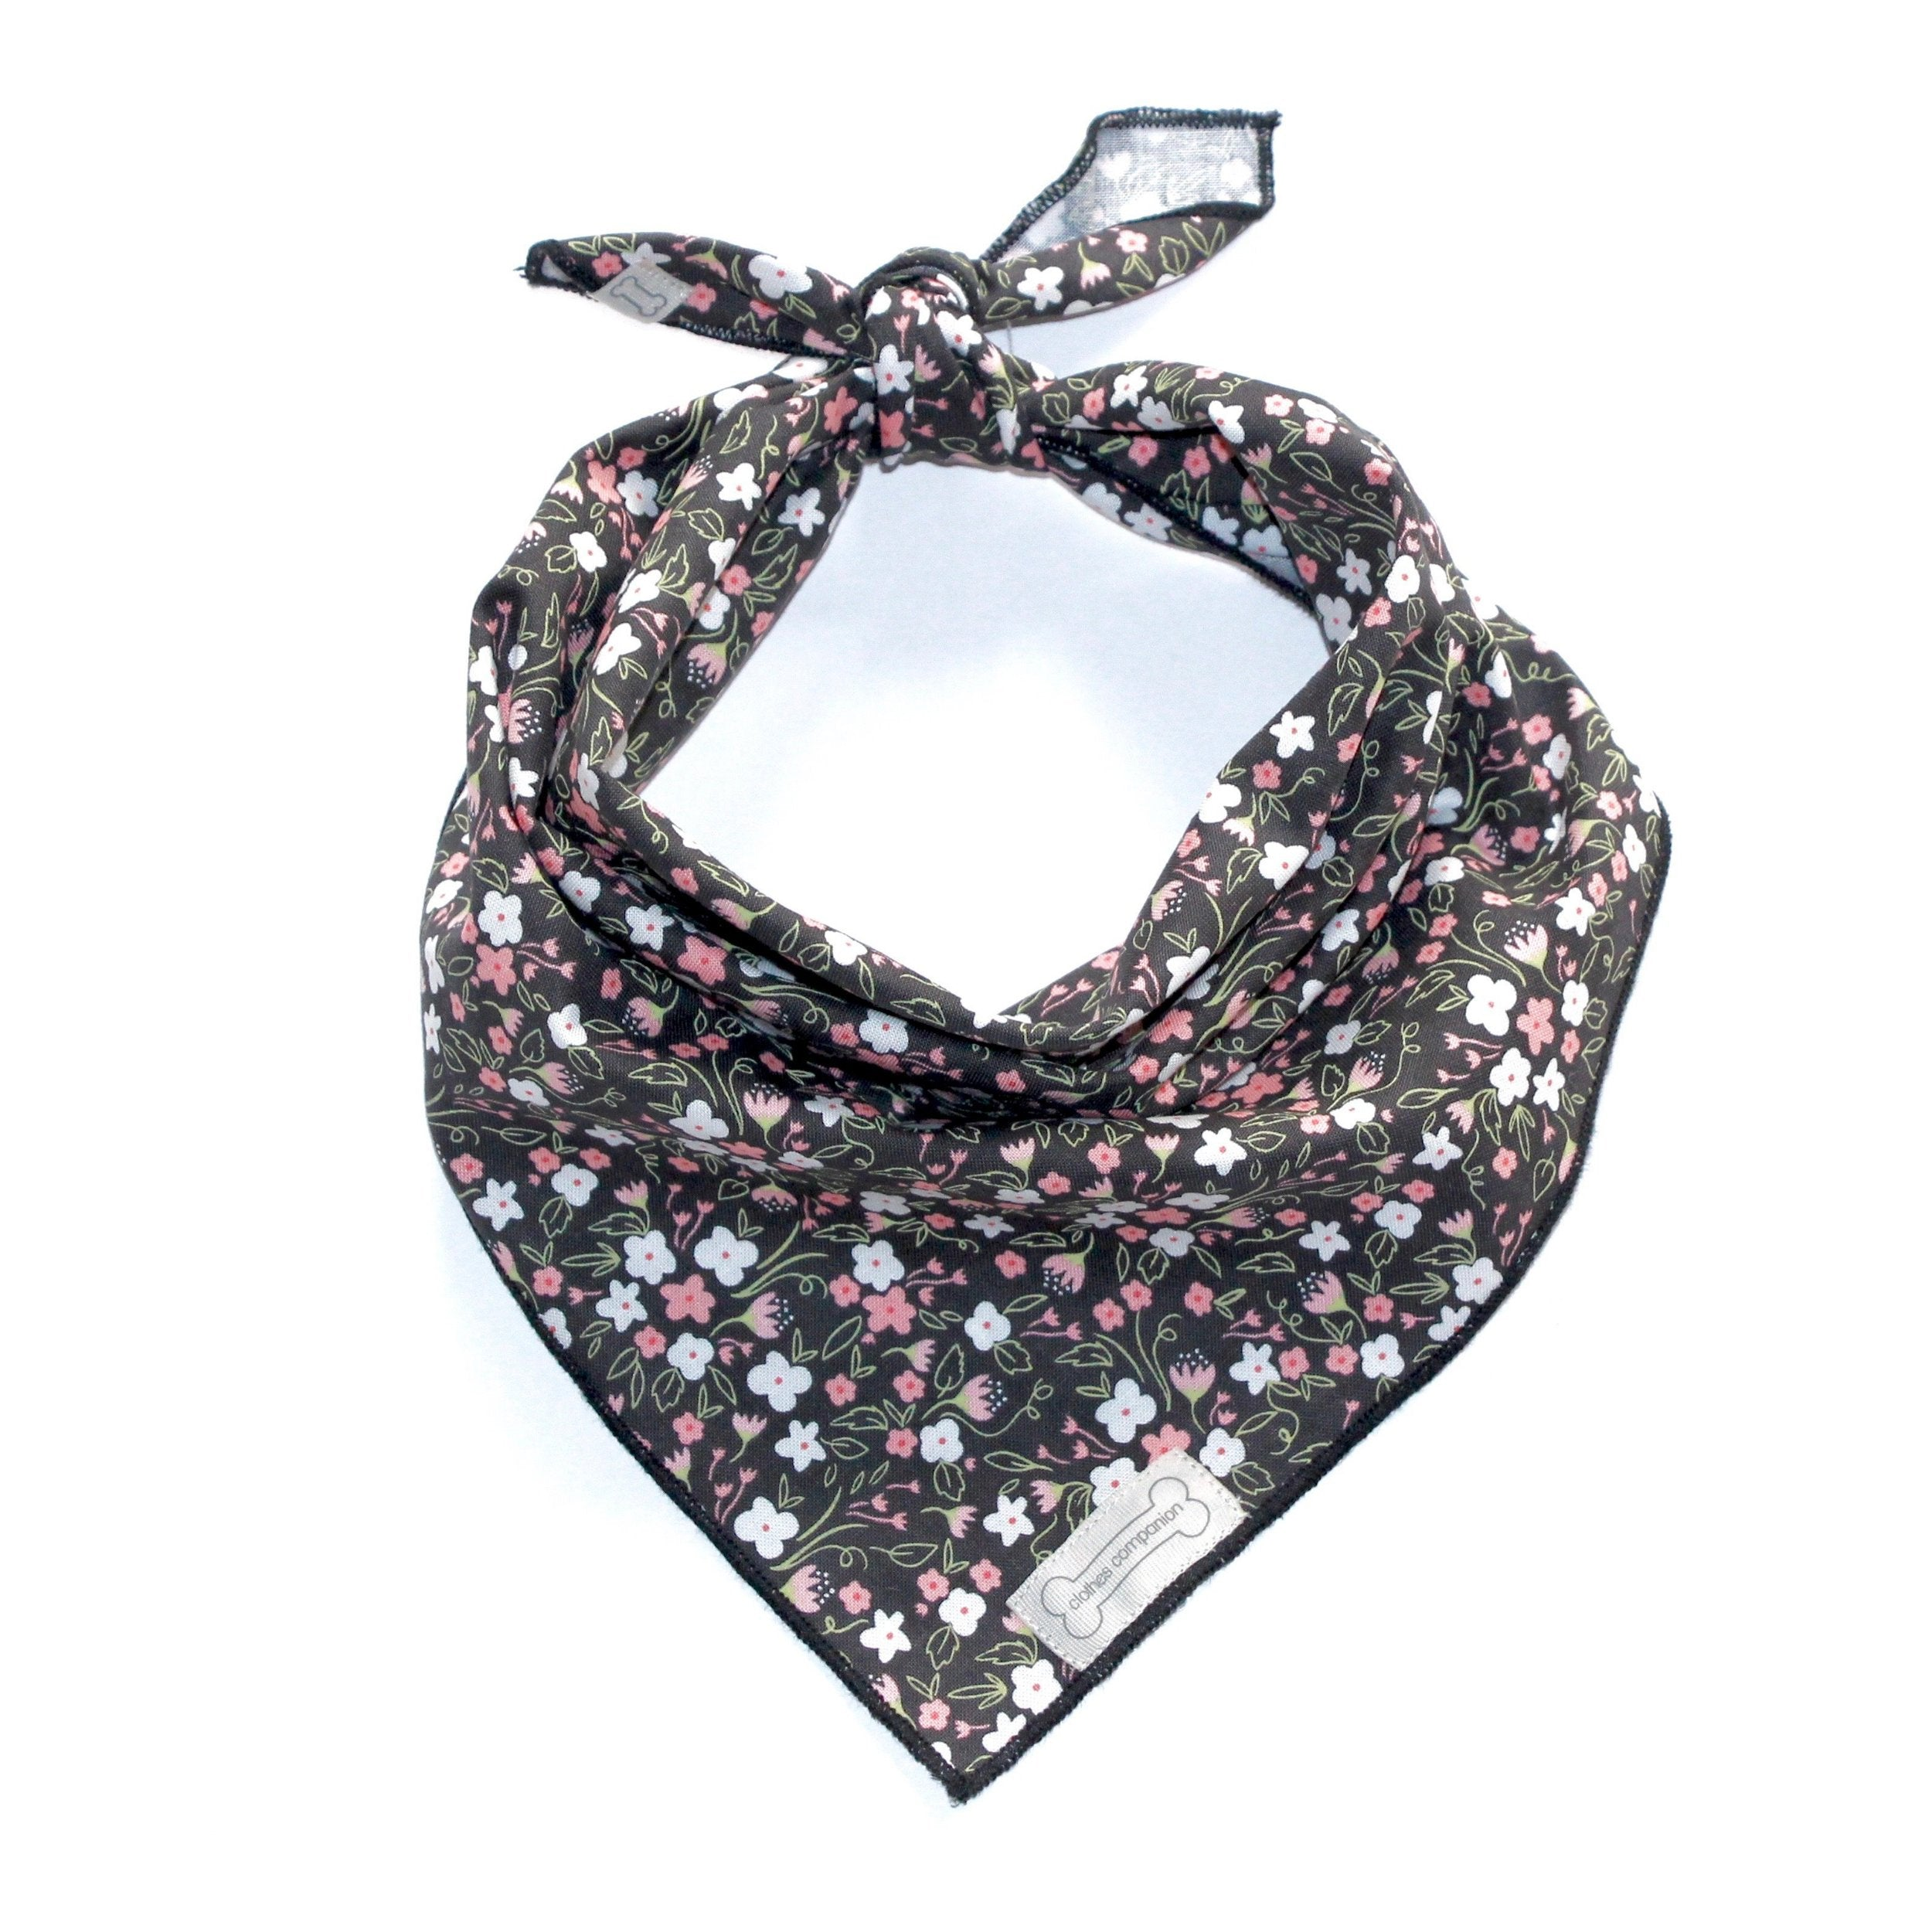 THE GYPSY ROSE CLASSIC-TIE BANDANA